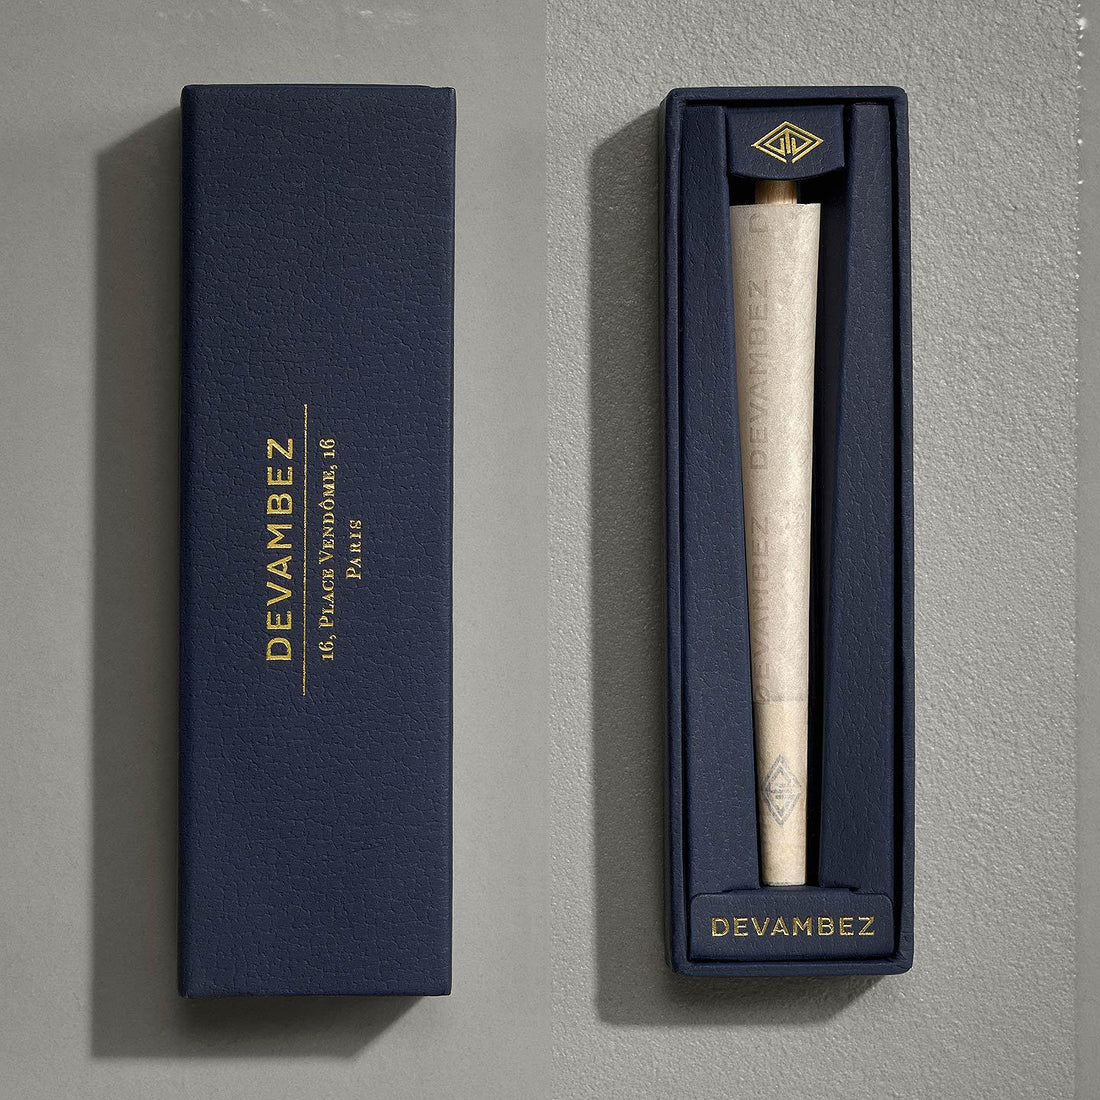 The Vendôme 20 - Pre rolled - Devambez